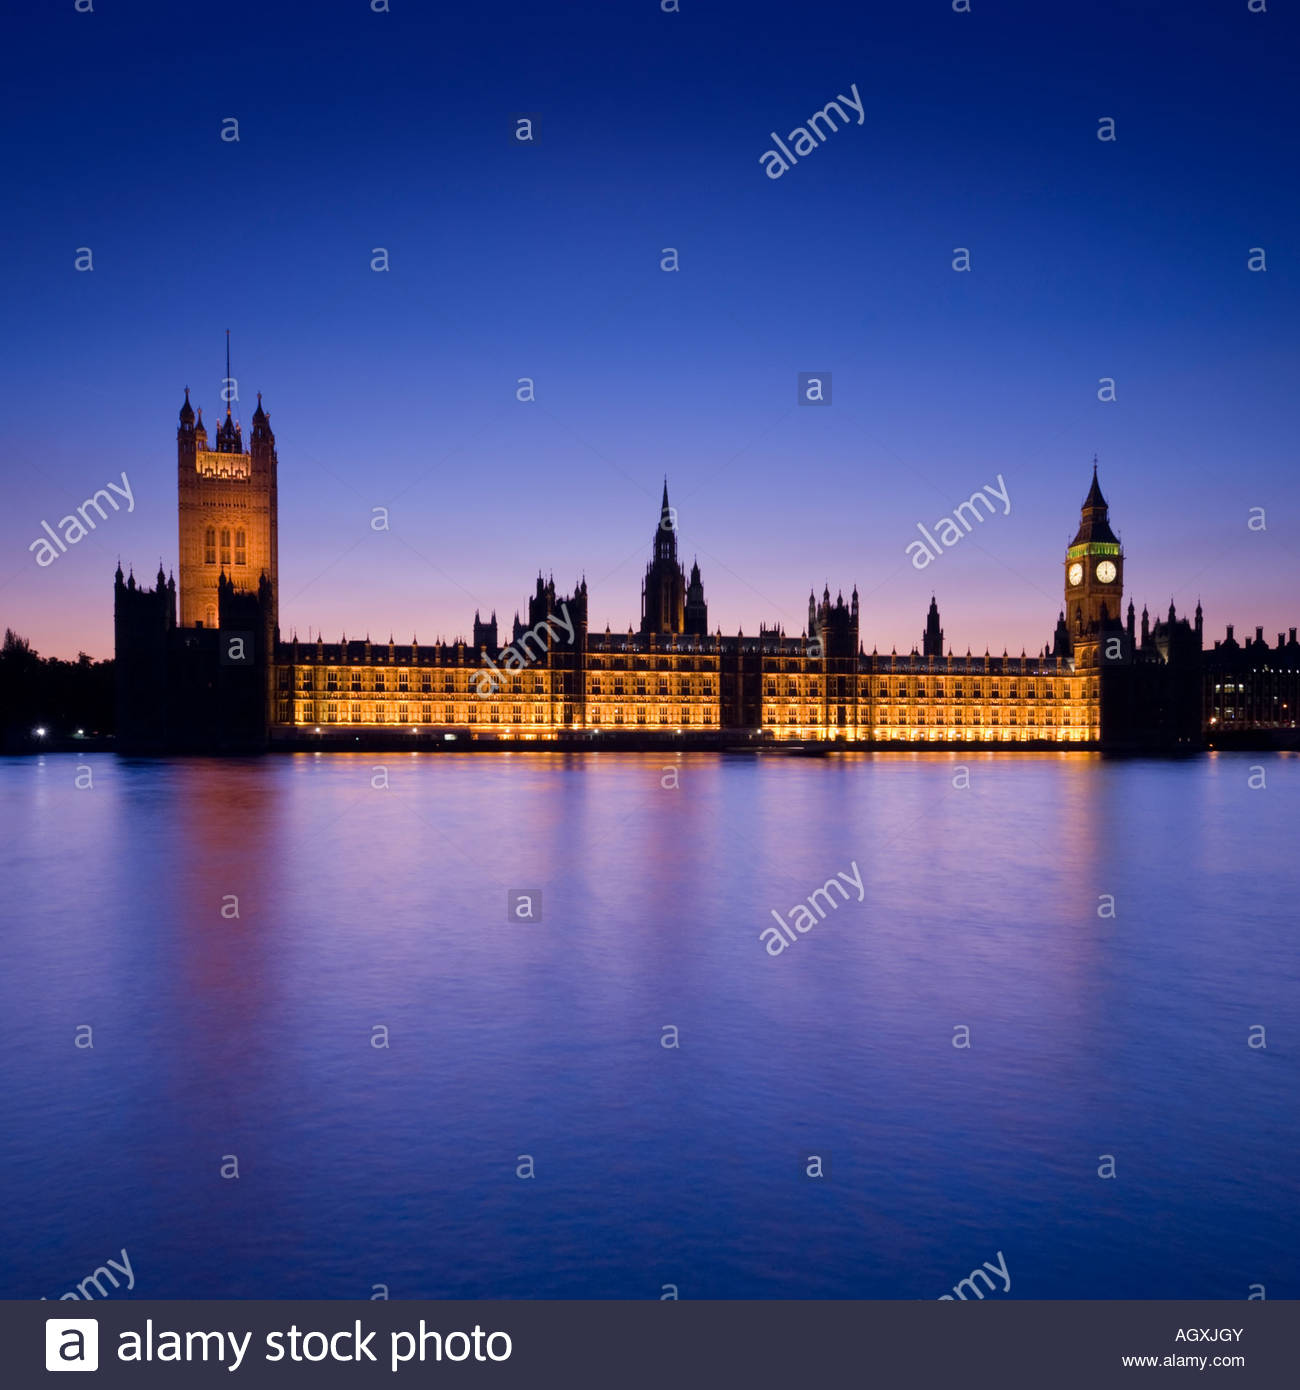 The Houses of Parliament and Big Ben at night, London, England, UK - Stock Image